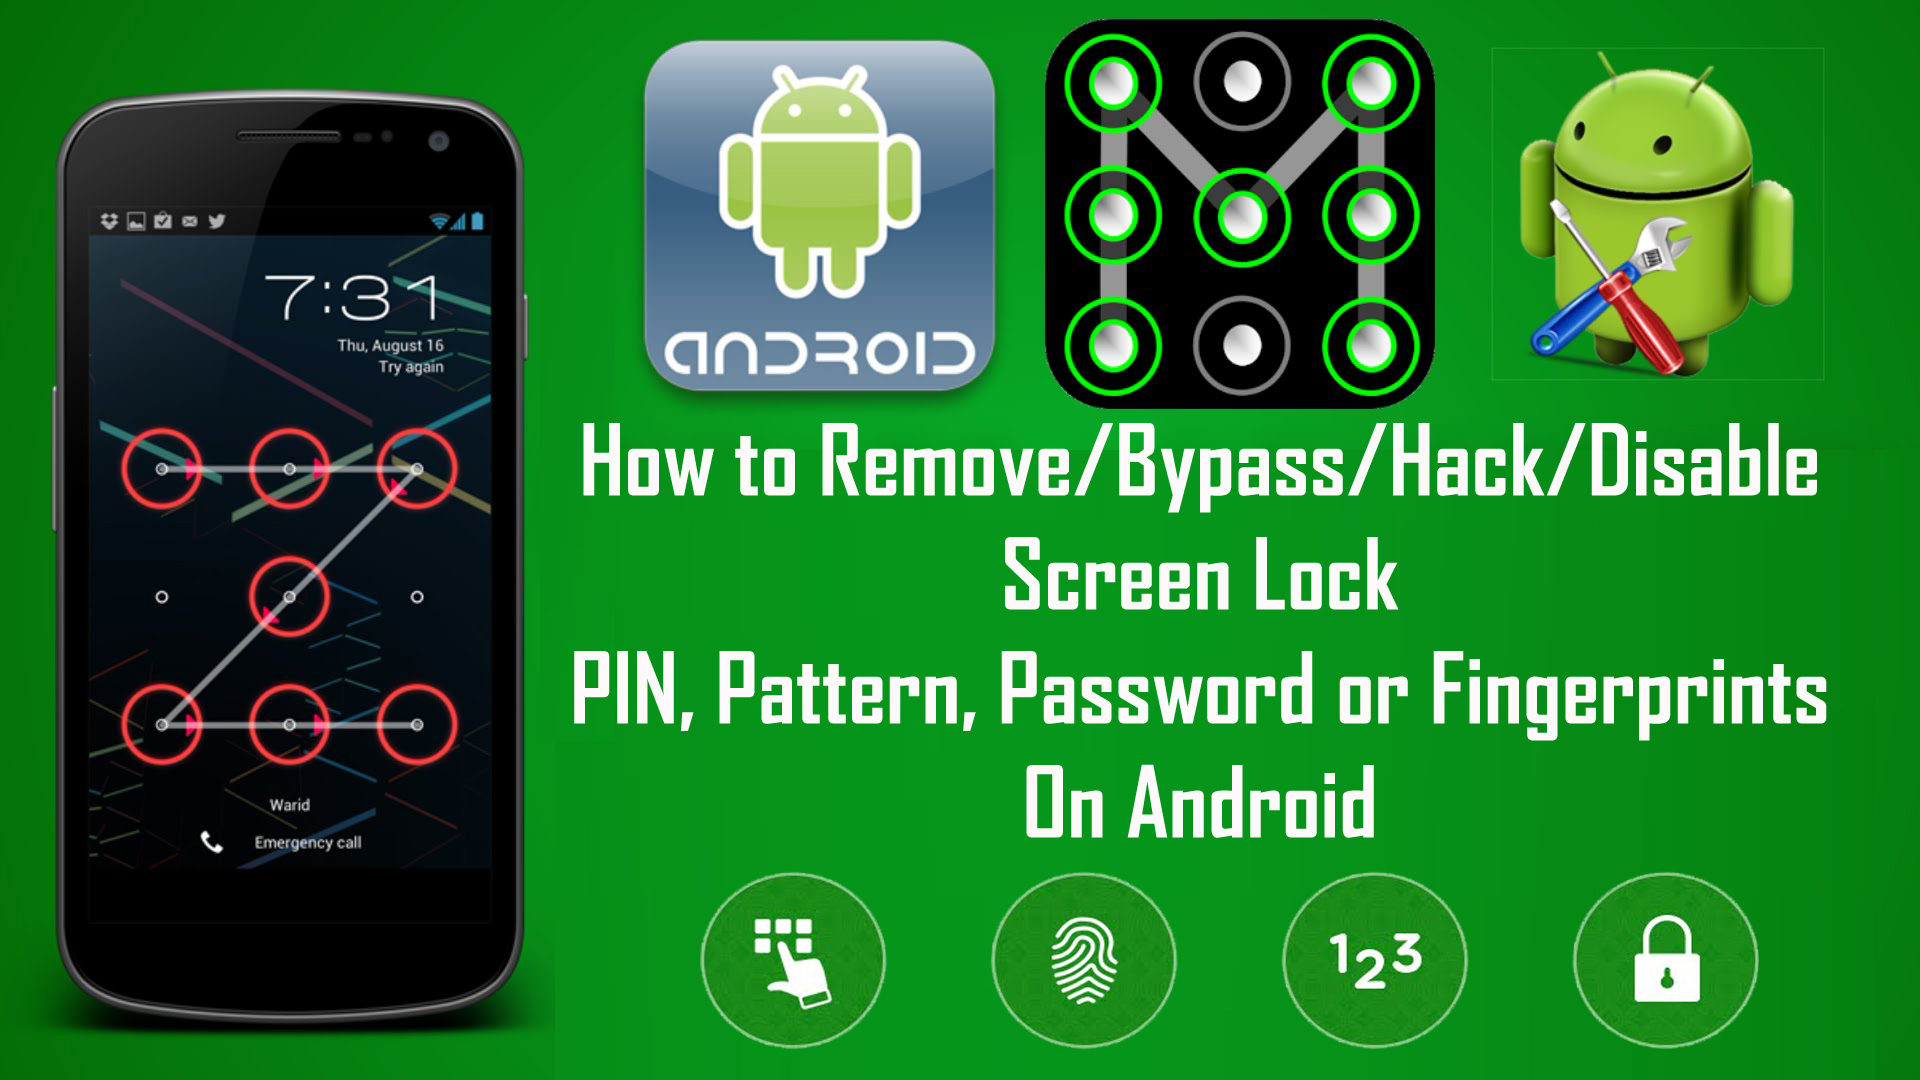 How to Remove or Bypass Android Screen Locks - [PIN, Pattern, Password or  Fingerprints]